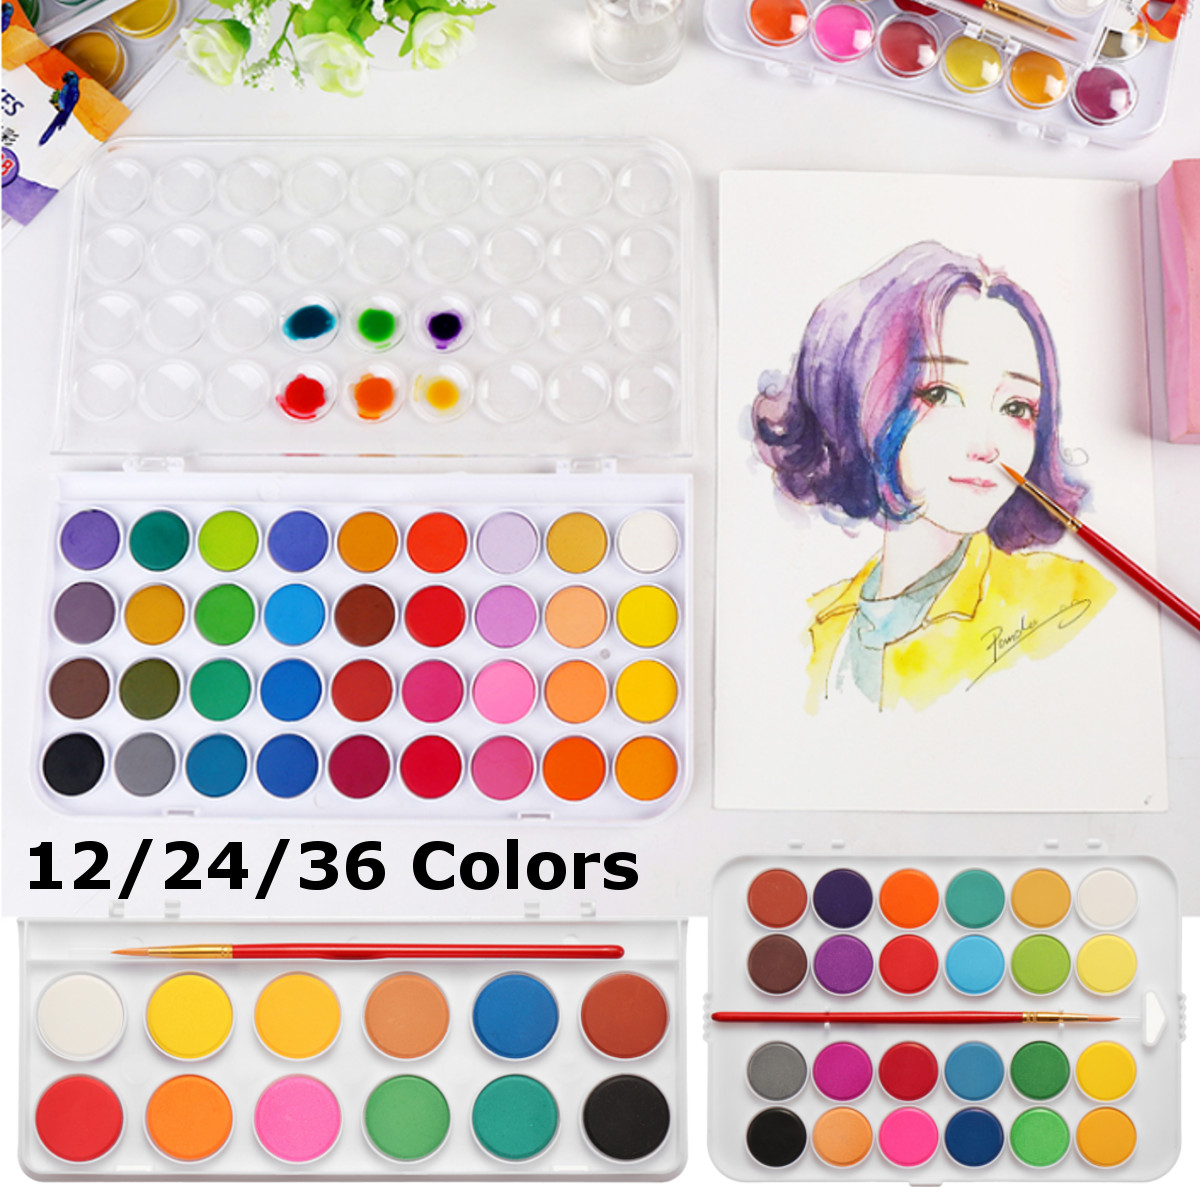 12/24/36 Colors Portable Travel Solid Pigment Watercolor Paints Set With Water Color Brush Pen For Painting Art Supplies12/24/36 Colors Portable Travel Solid Pigment Watercolor Paints Set With Water Color Brush Pen For Painting Art Supplies